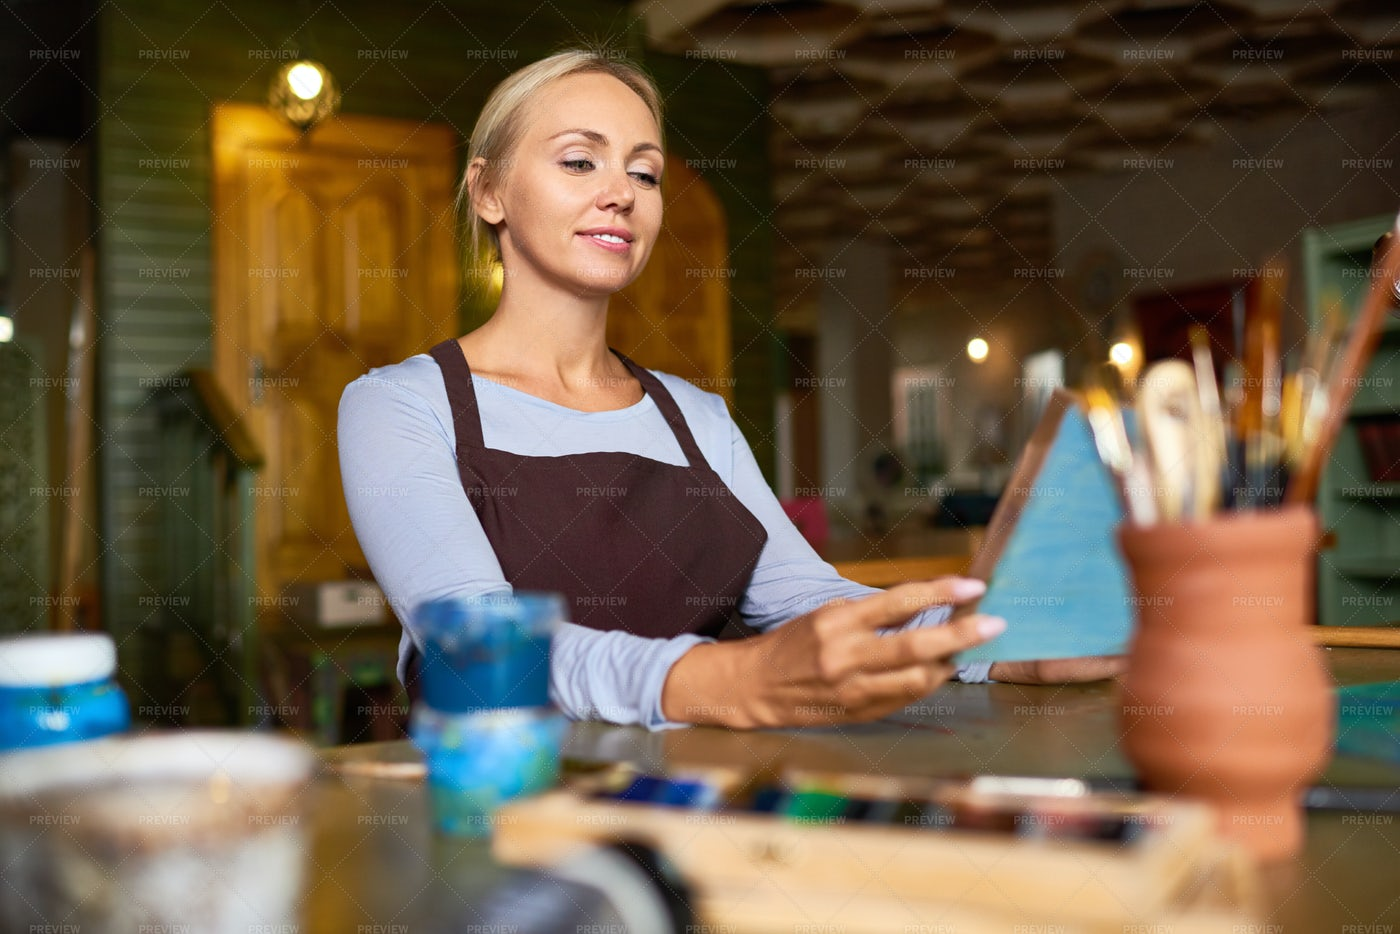 Smiling Artist Looking At Her...: Stock Photos